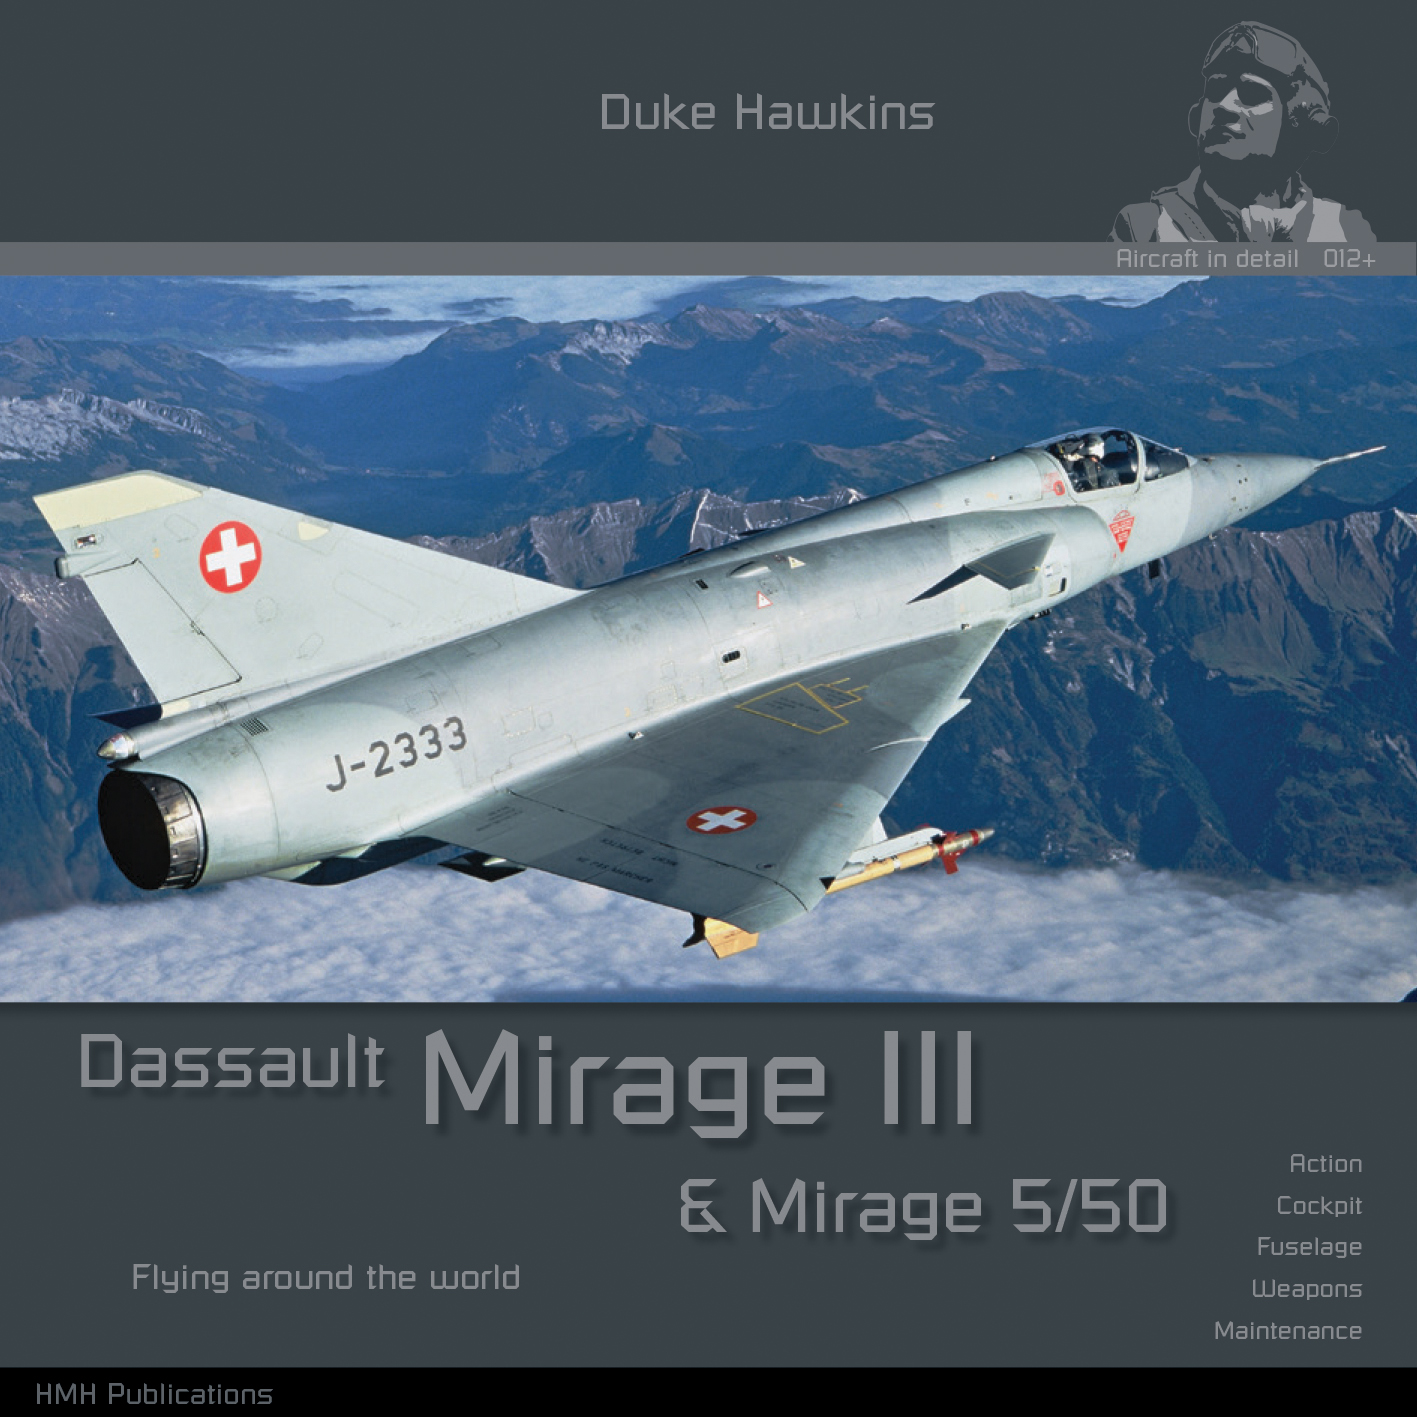 DH013 - Mirage III-001(1)